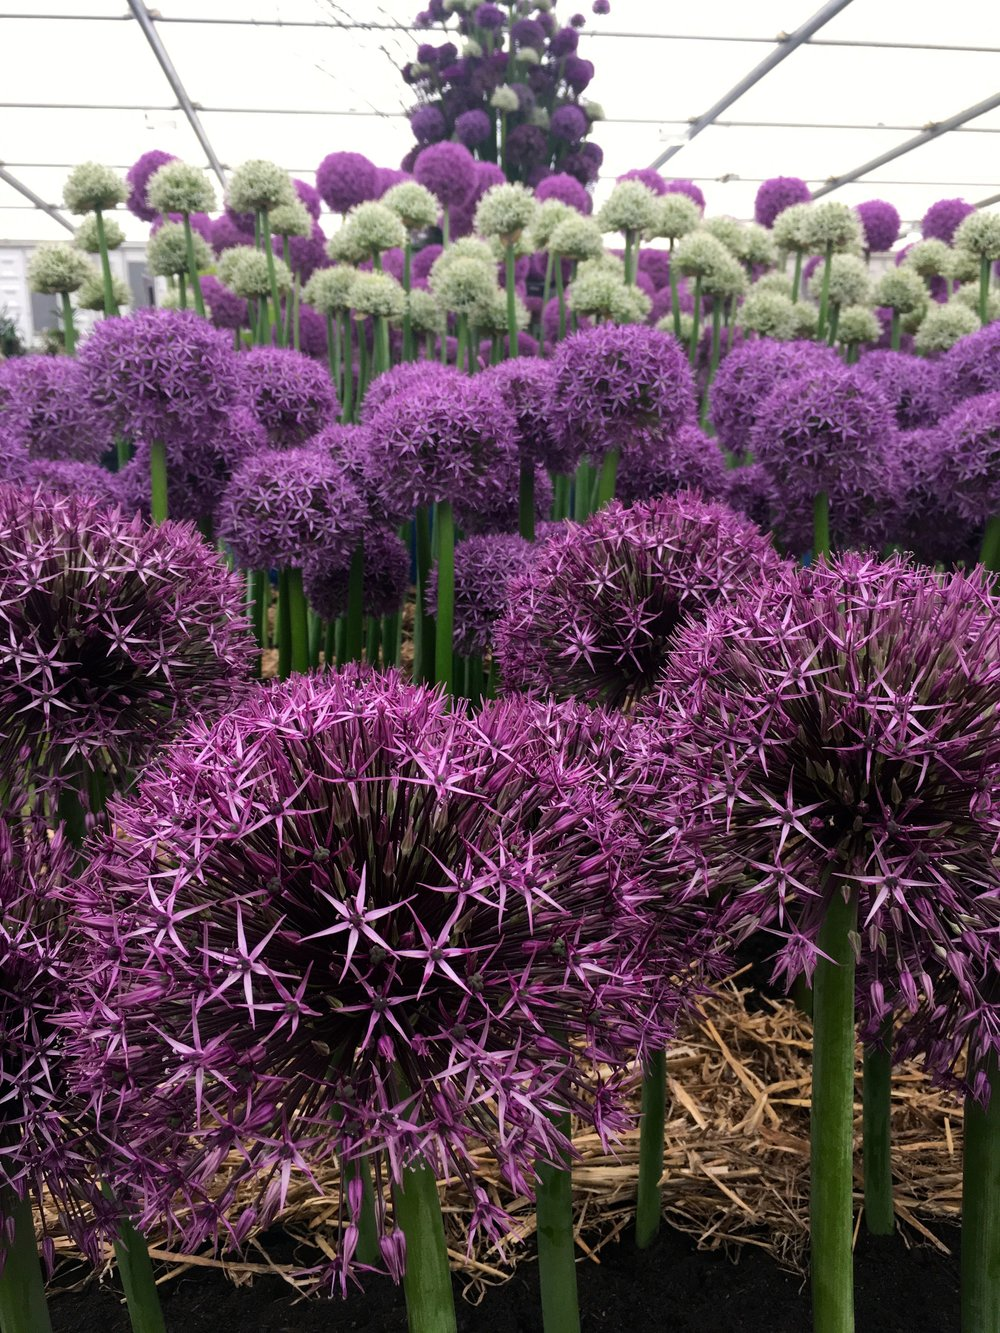 Layers of alliums in the pavilion at chelsea